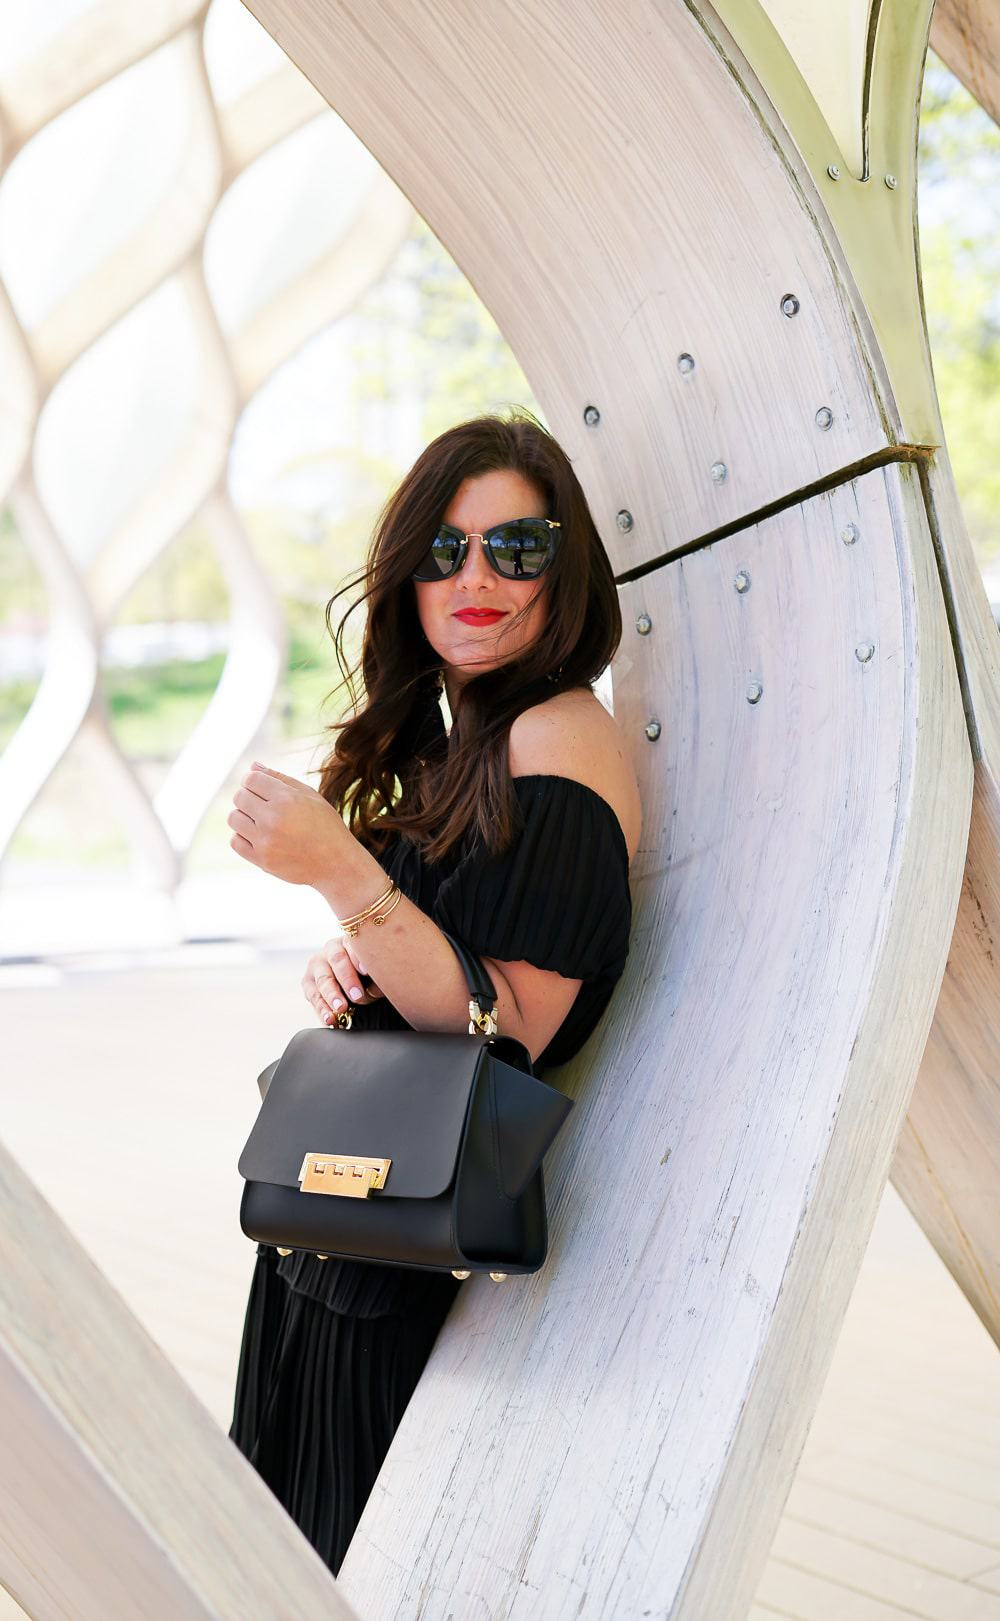 5 things to do this weekend in chicago, a lily love affair, chicago blogger, shein black chiffon dress, zac posen bag, miu miu sunglasses, lincoln park zoo